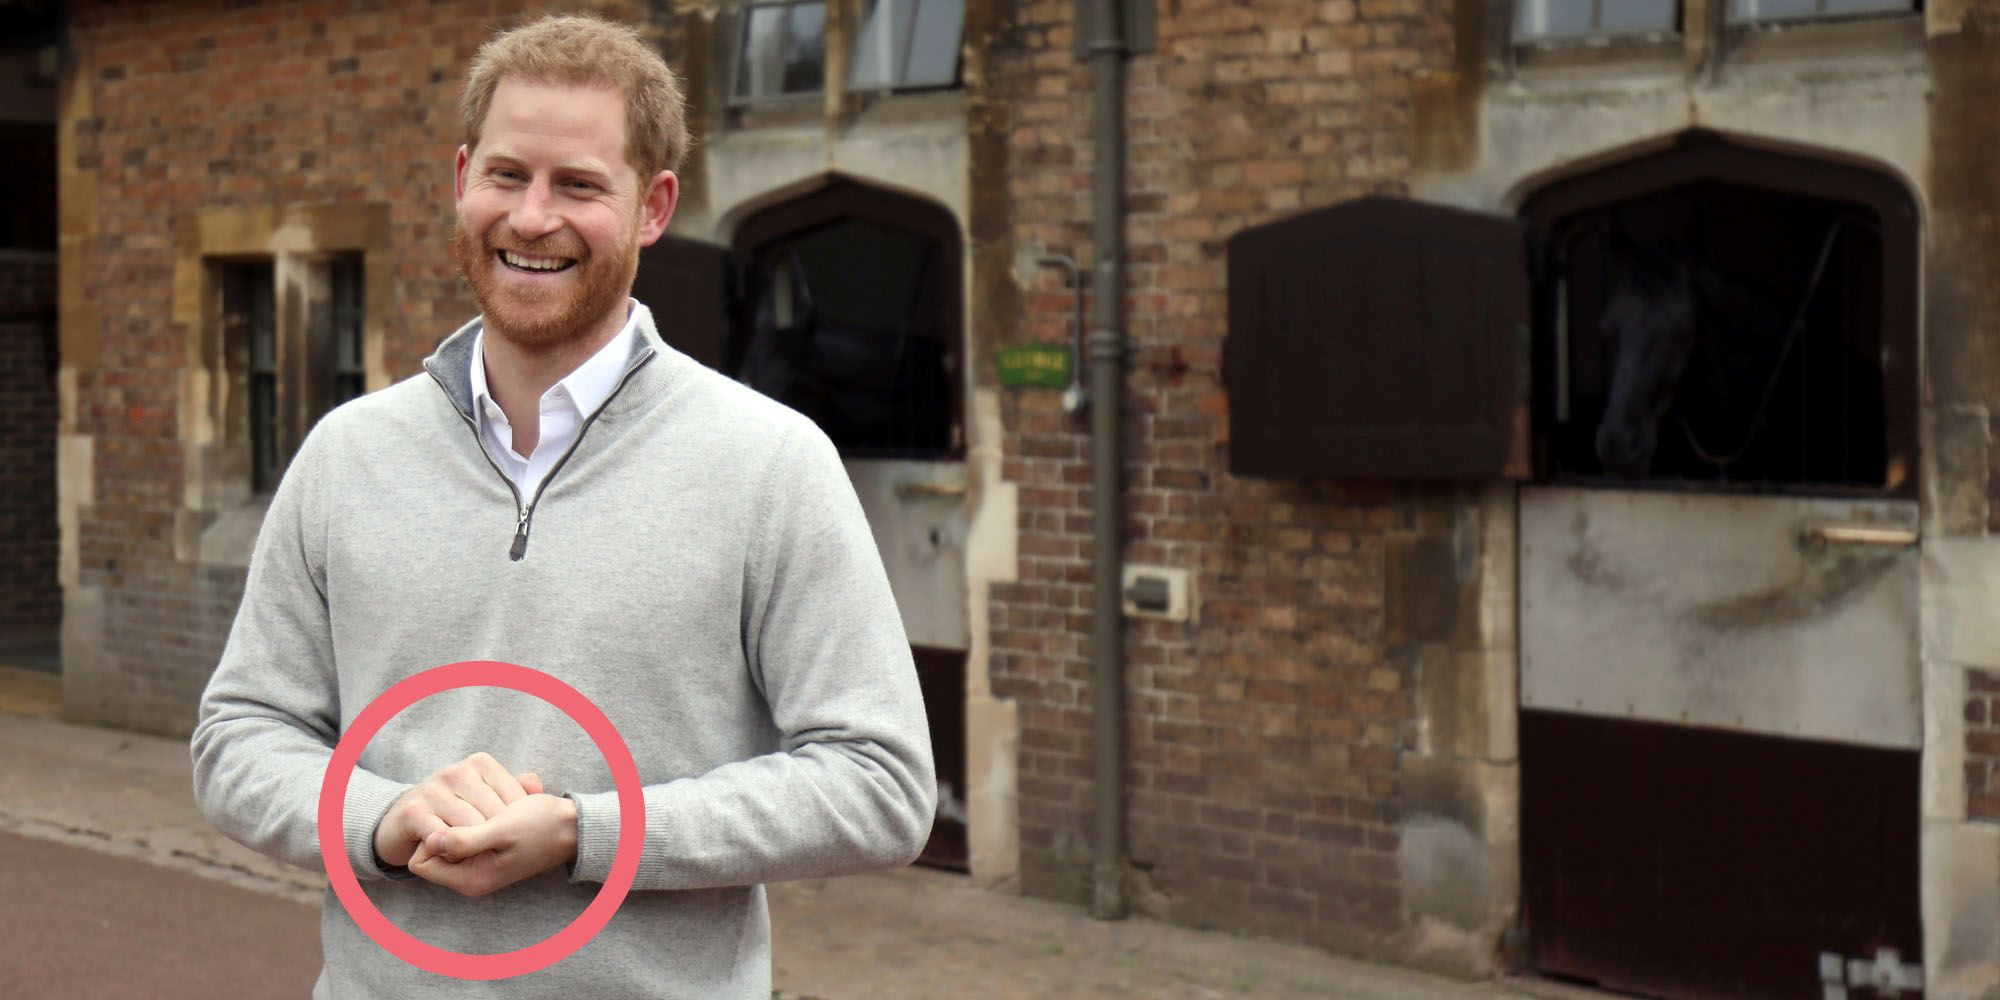 Body Language Experts Analyze Prince Harry's First Interview After the Royal Baby's Birth